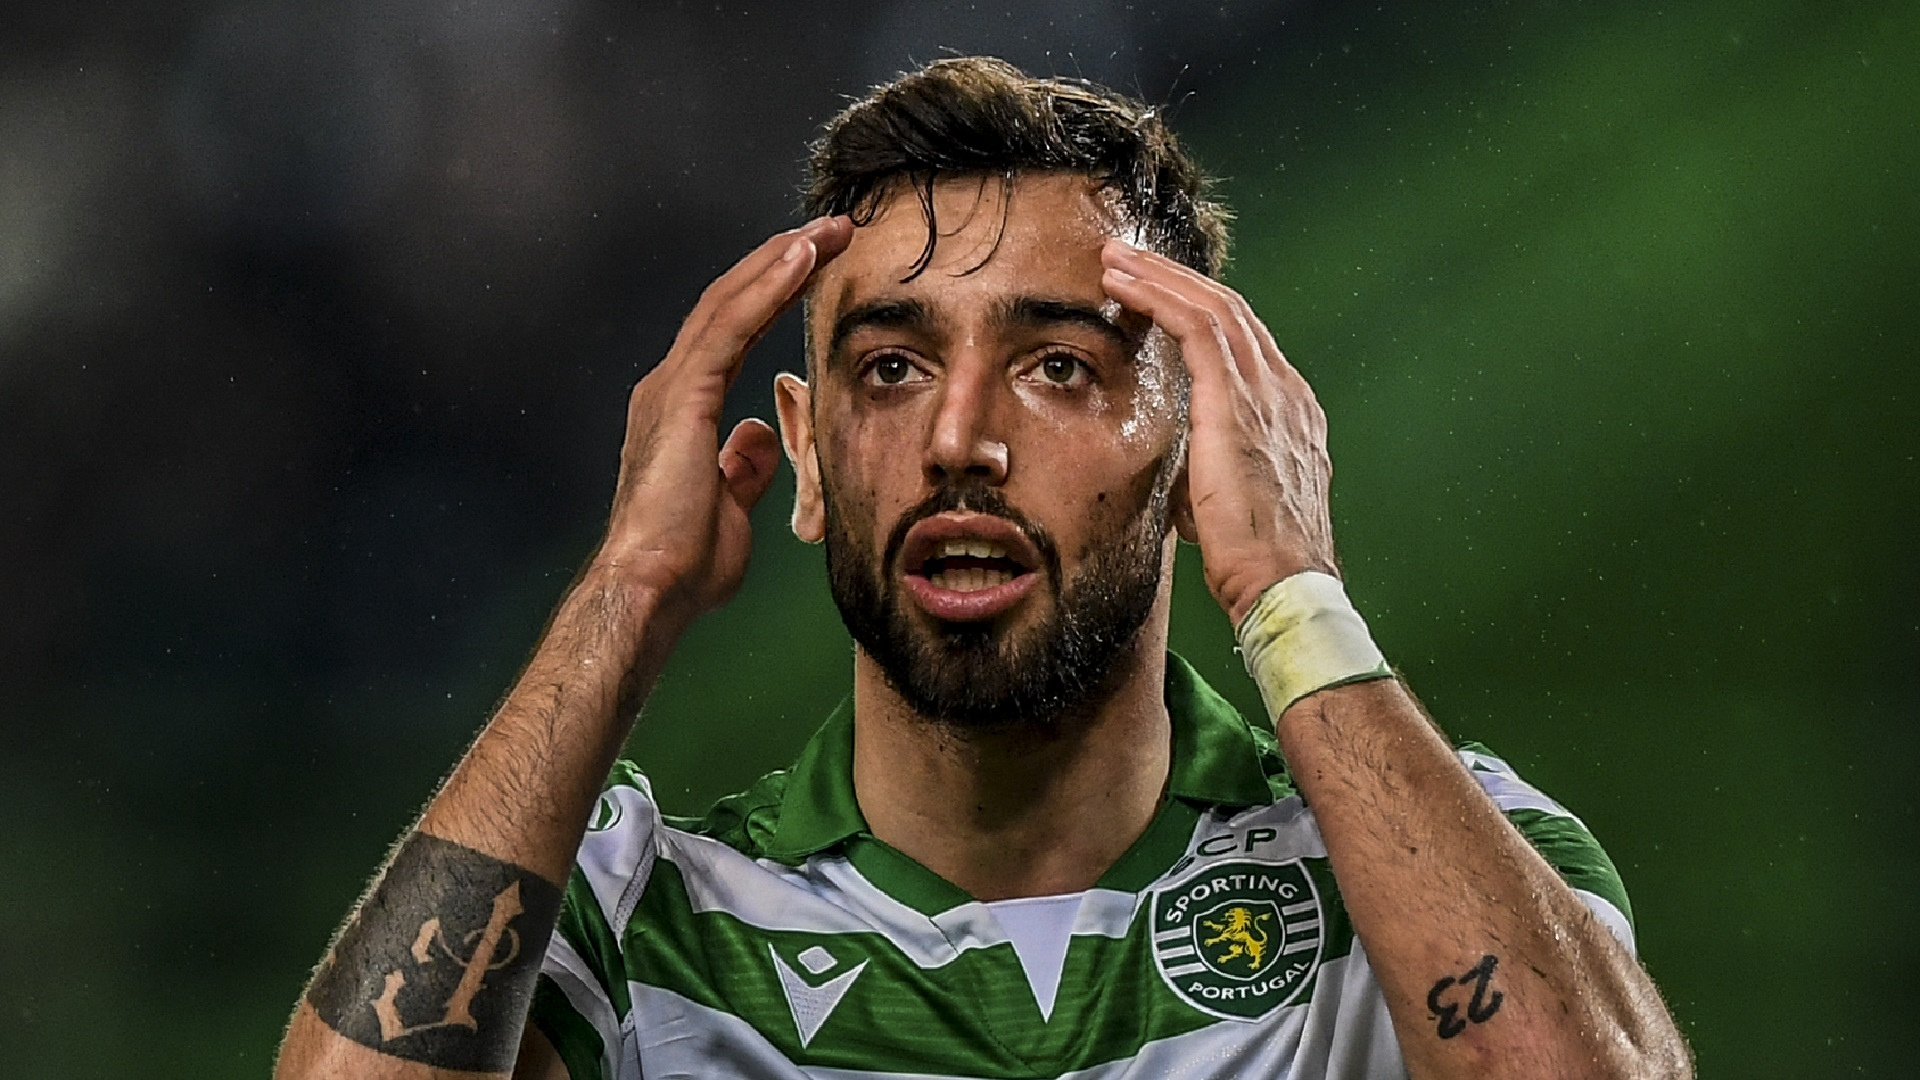 'I would like him to stay' - Man Utd target Fernandes' future remains uncertain, Sporting coach claims